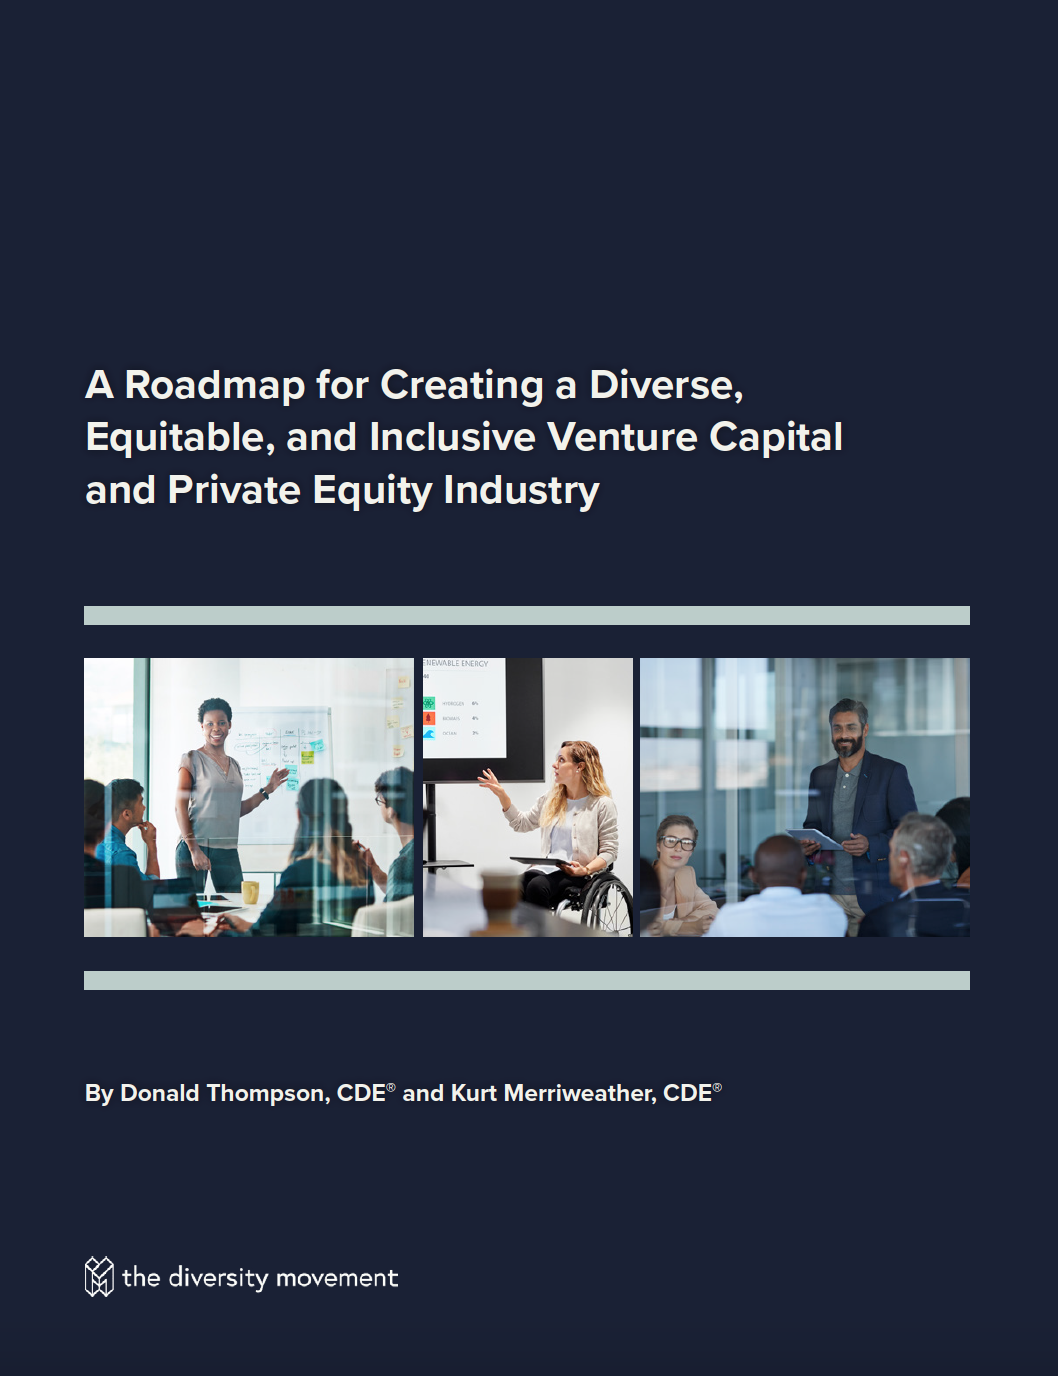 Image of the roadmap cover page featuring photos of diverse employees working together